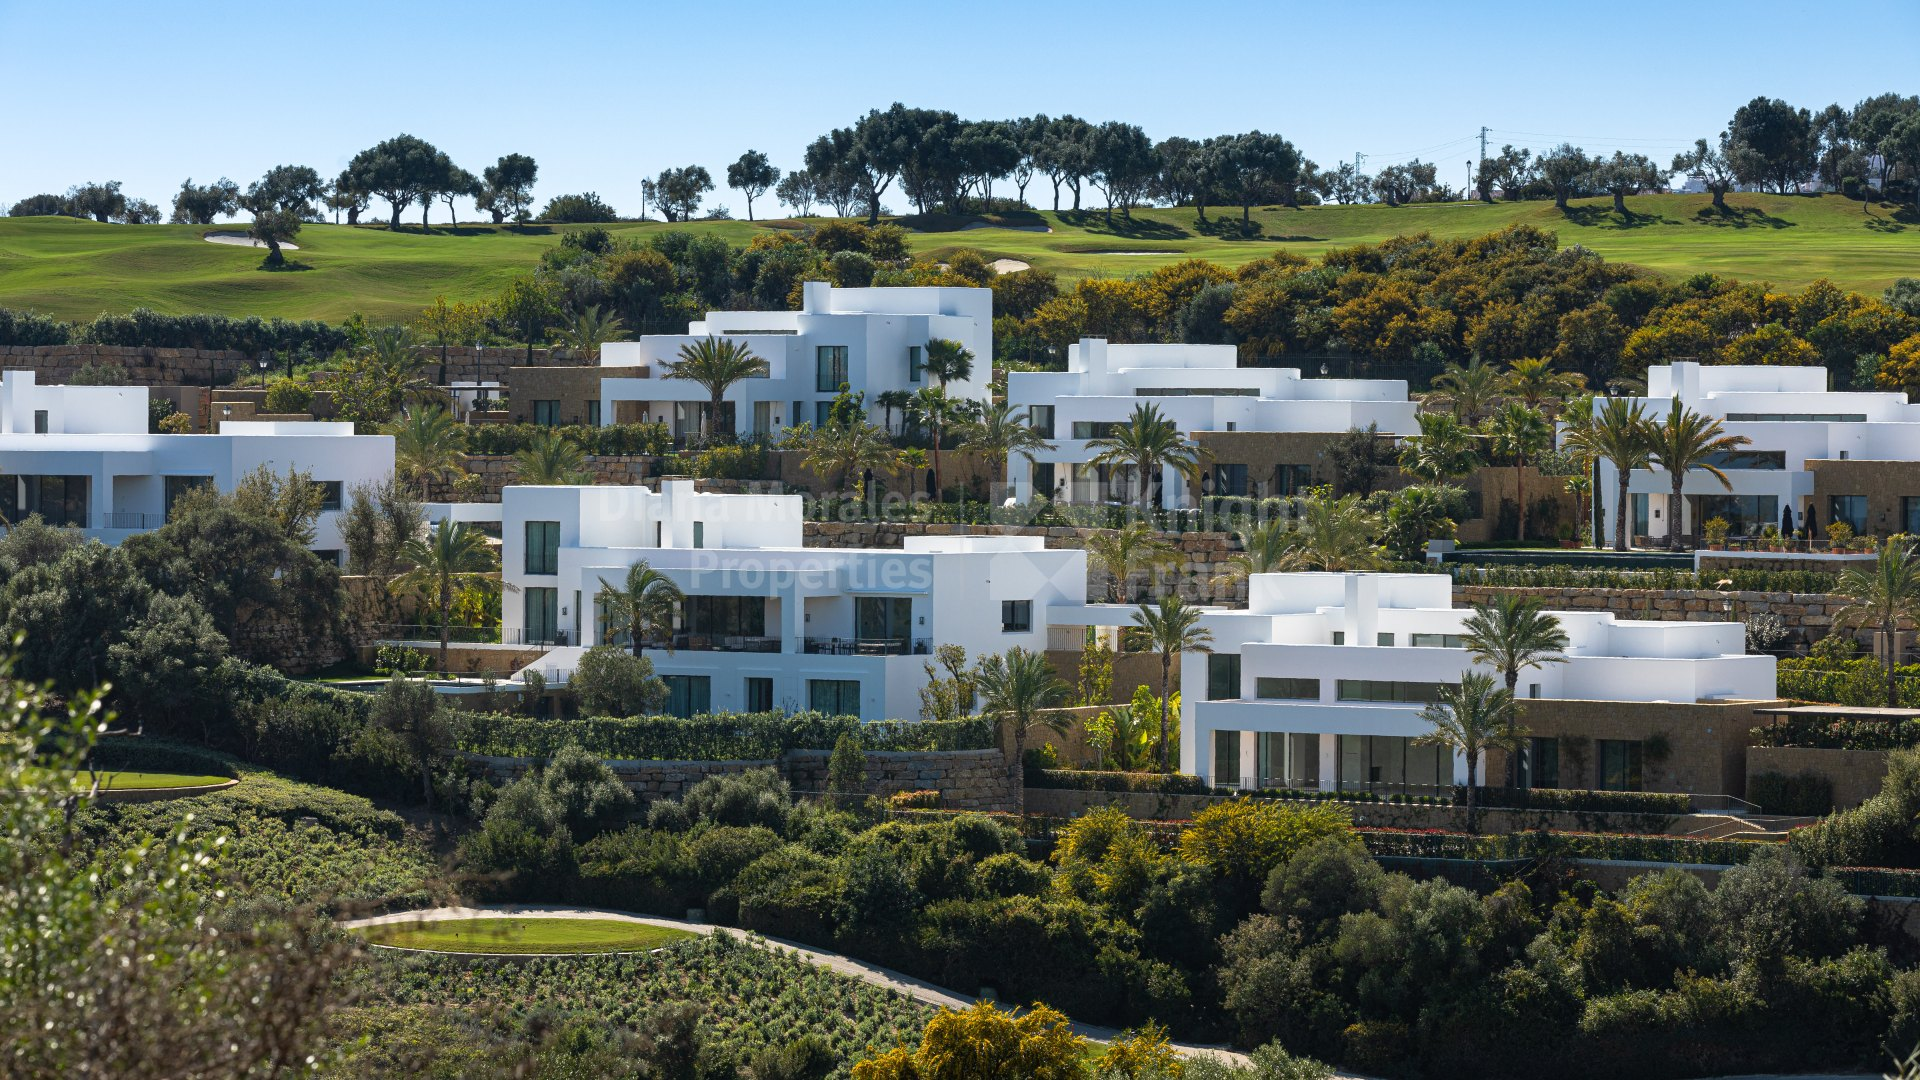 Finca Cortesin, Elegant residential development of 15 private villas